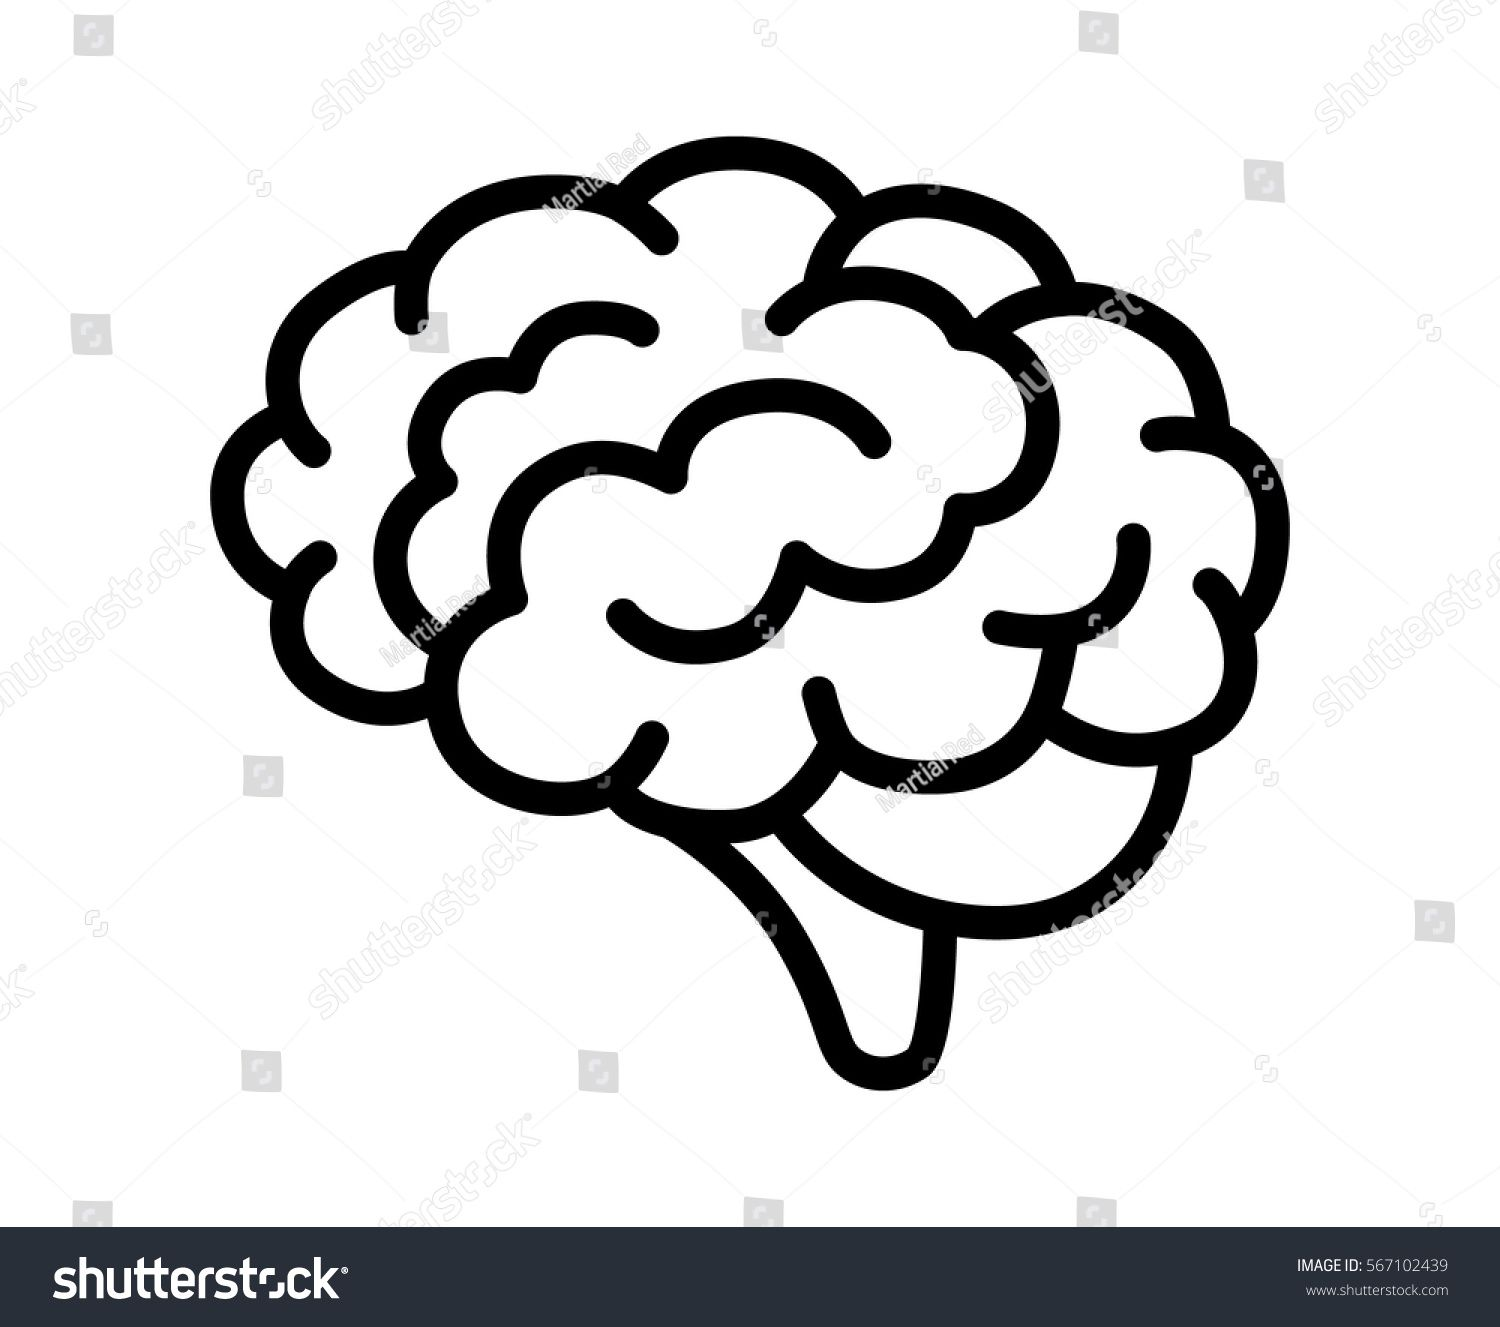 Brain Or Mind Side View Line Art Vector Icon For Medical Apps And Websites Ad Ad View Line Side Brain Line Art Vector Brain Icon Brain Drawing